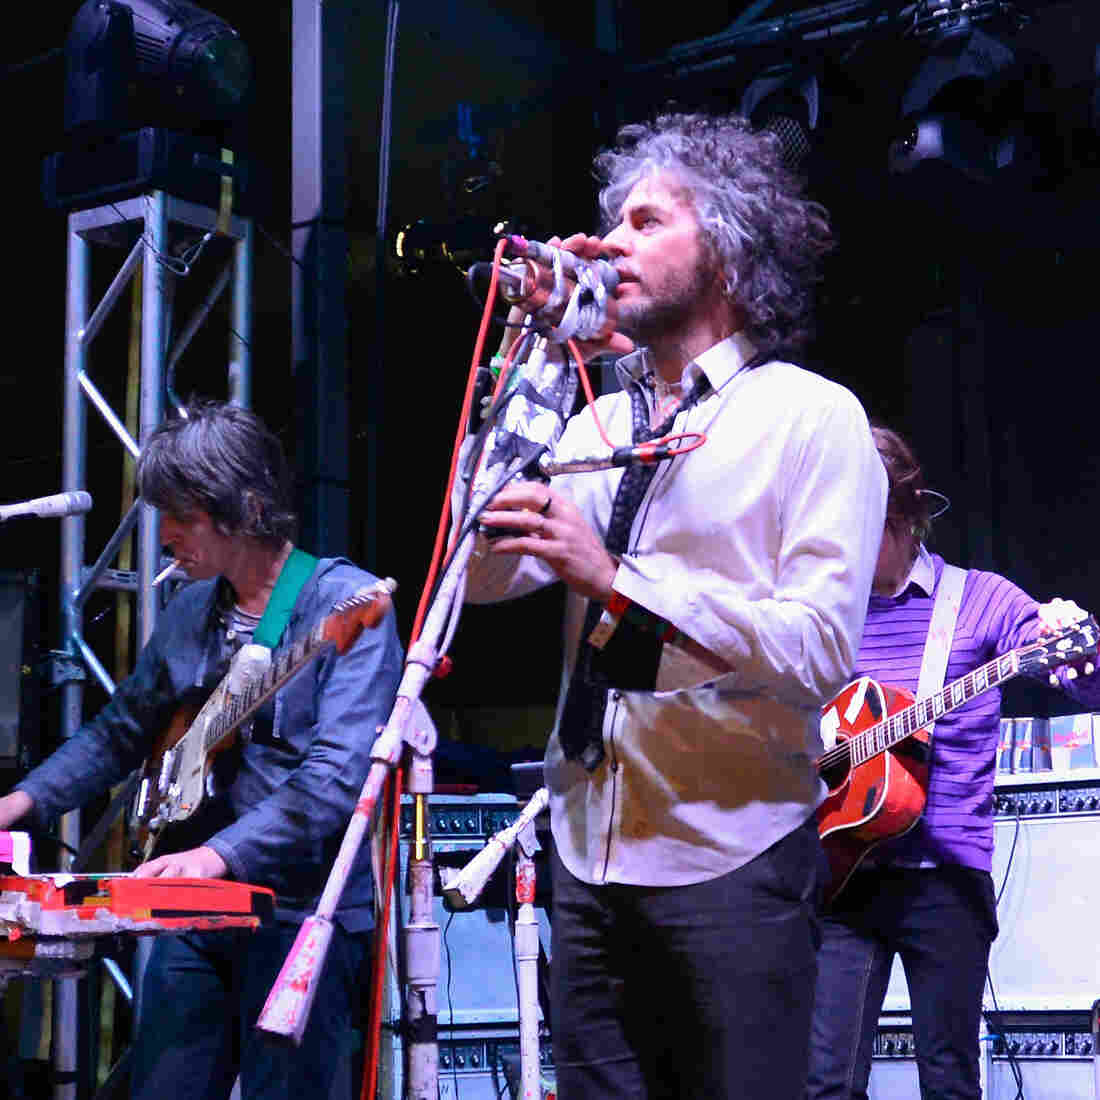 The Flaming Lips on stage at the Belmont in Austin, Texas. The band played its 2002 album, Yoshimi Battles the Pink Robots.